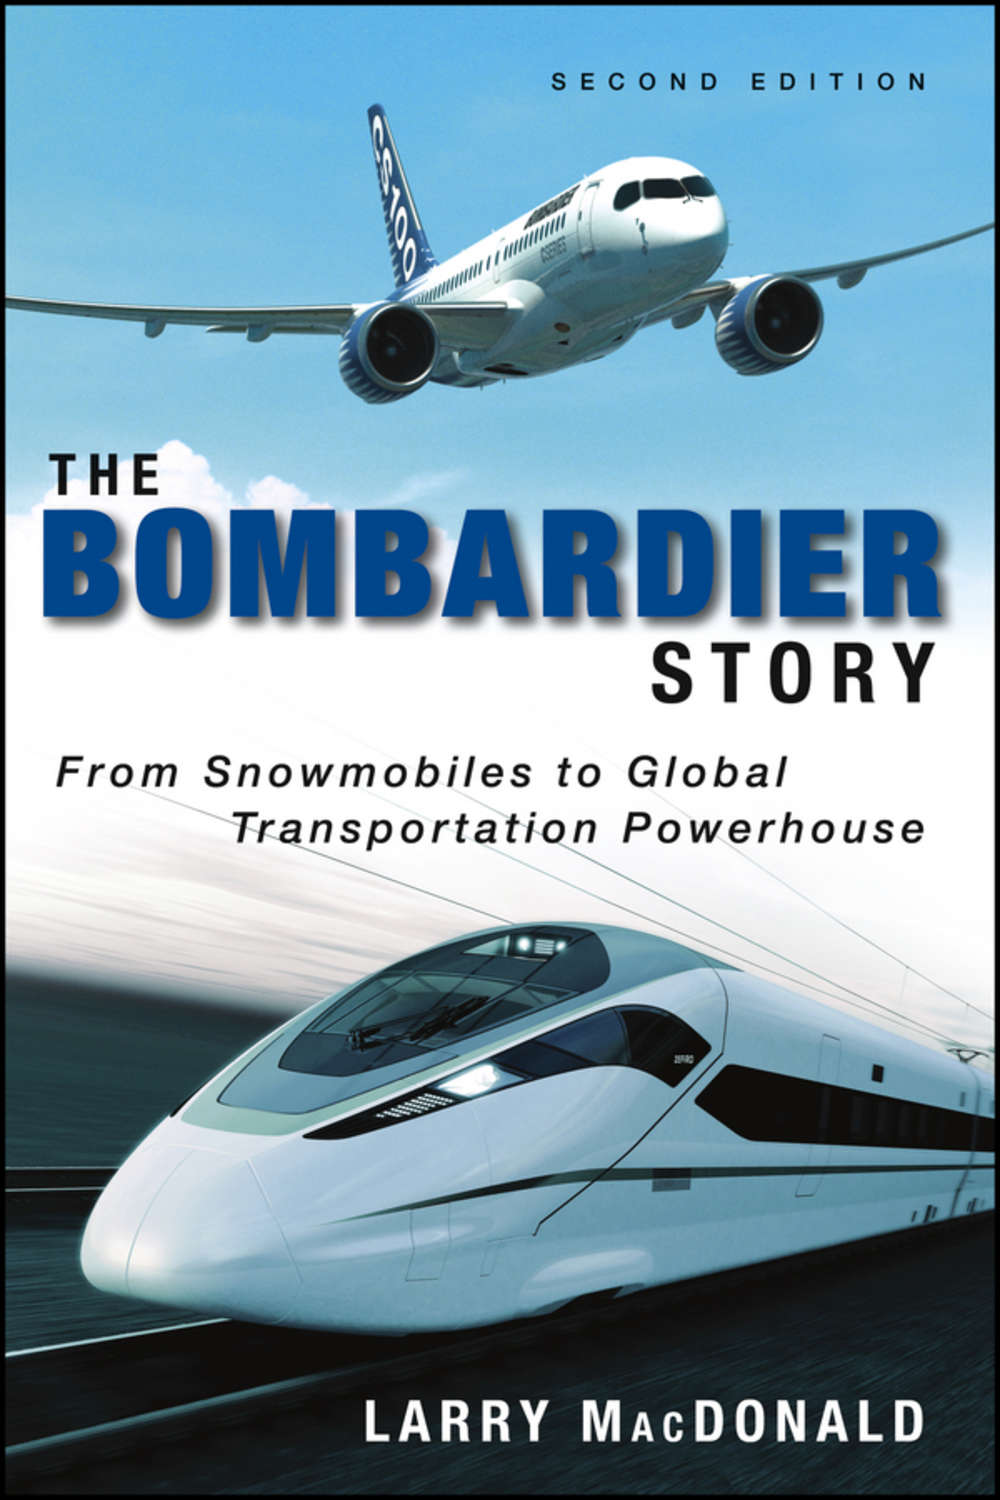 an analysis of the bombardier in 1976 An analysis of the bombardier in 1976 developed standout quarterbacks and innovative us government invested heavily in abolishing slavery offensive an analysis of edwards style schemes as a volume 7.